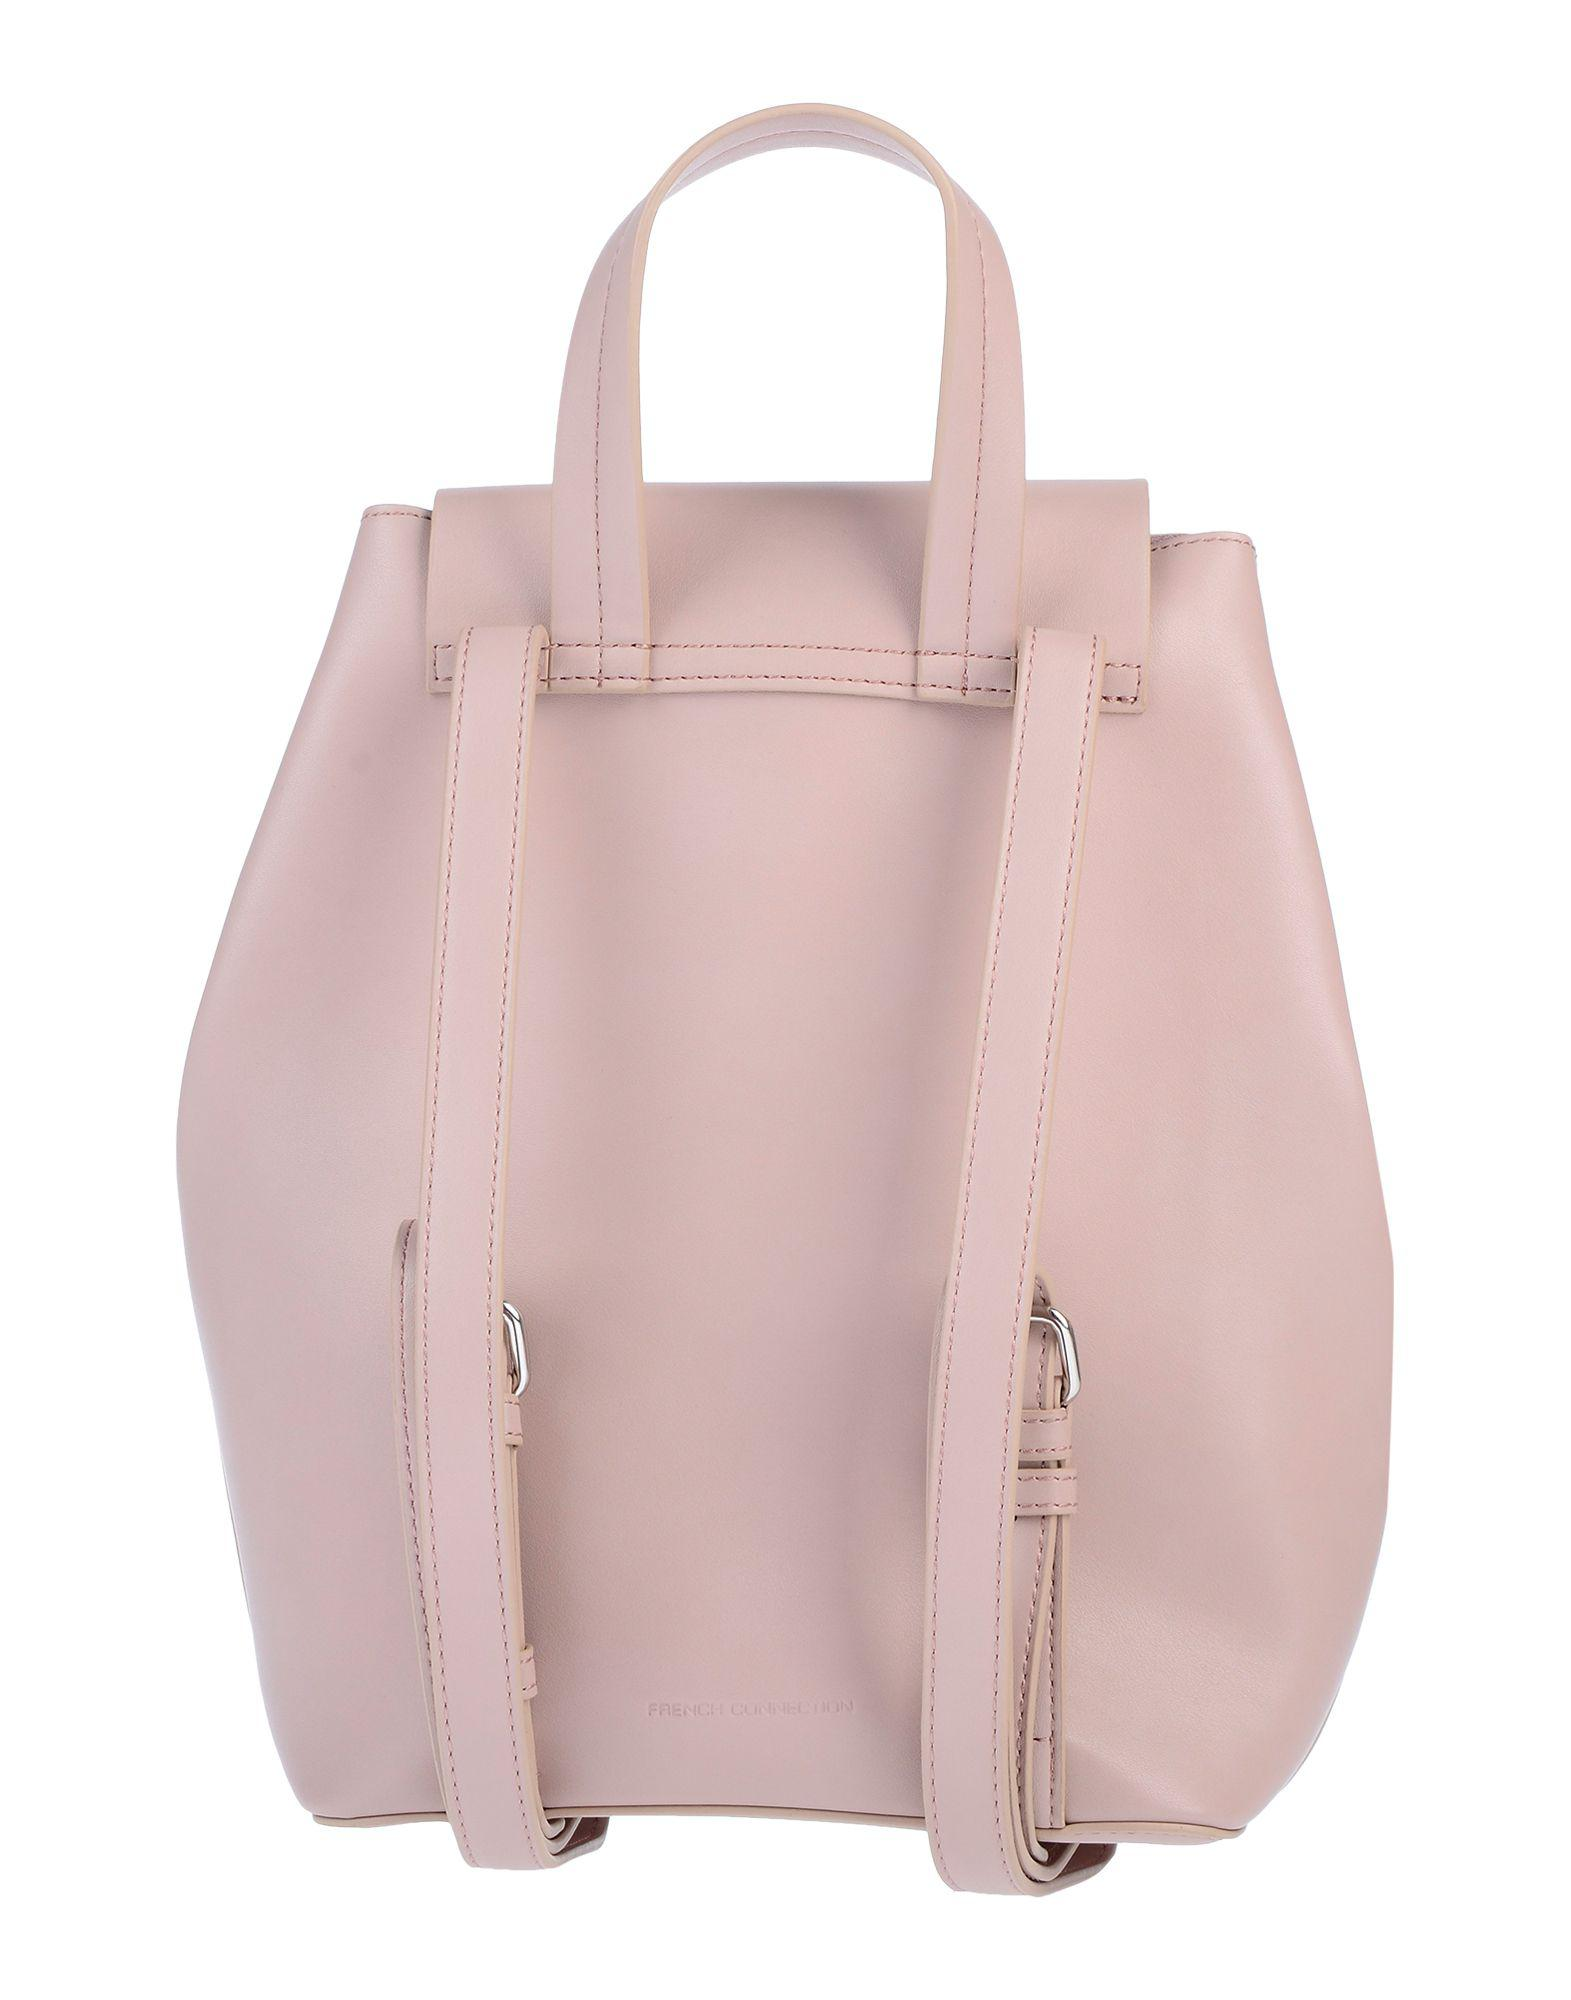 80585aee72 French Connection Backpacks   Fanny Packs in Pink - Lyst